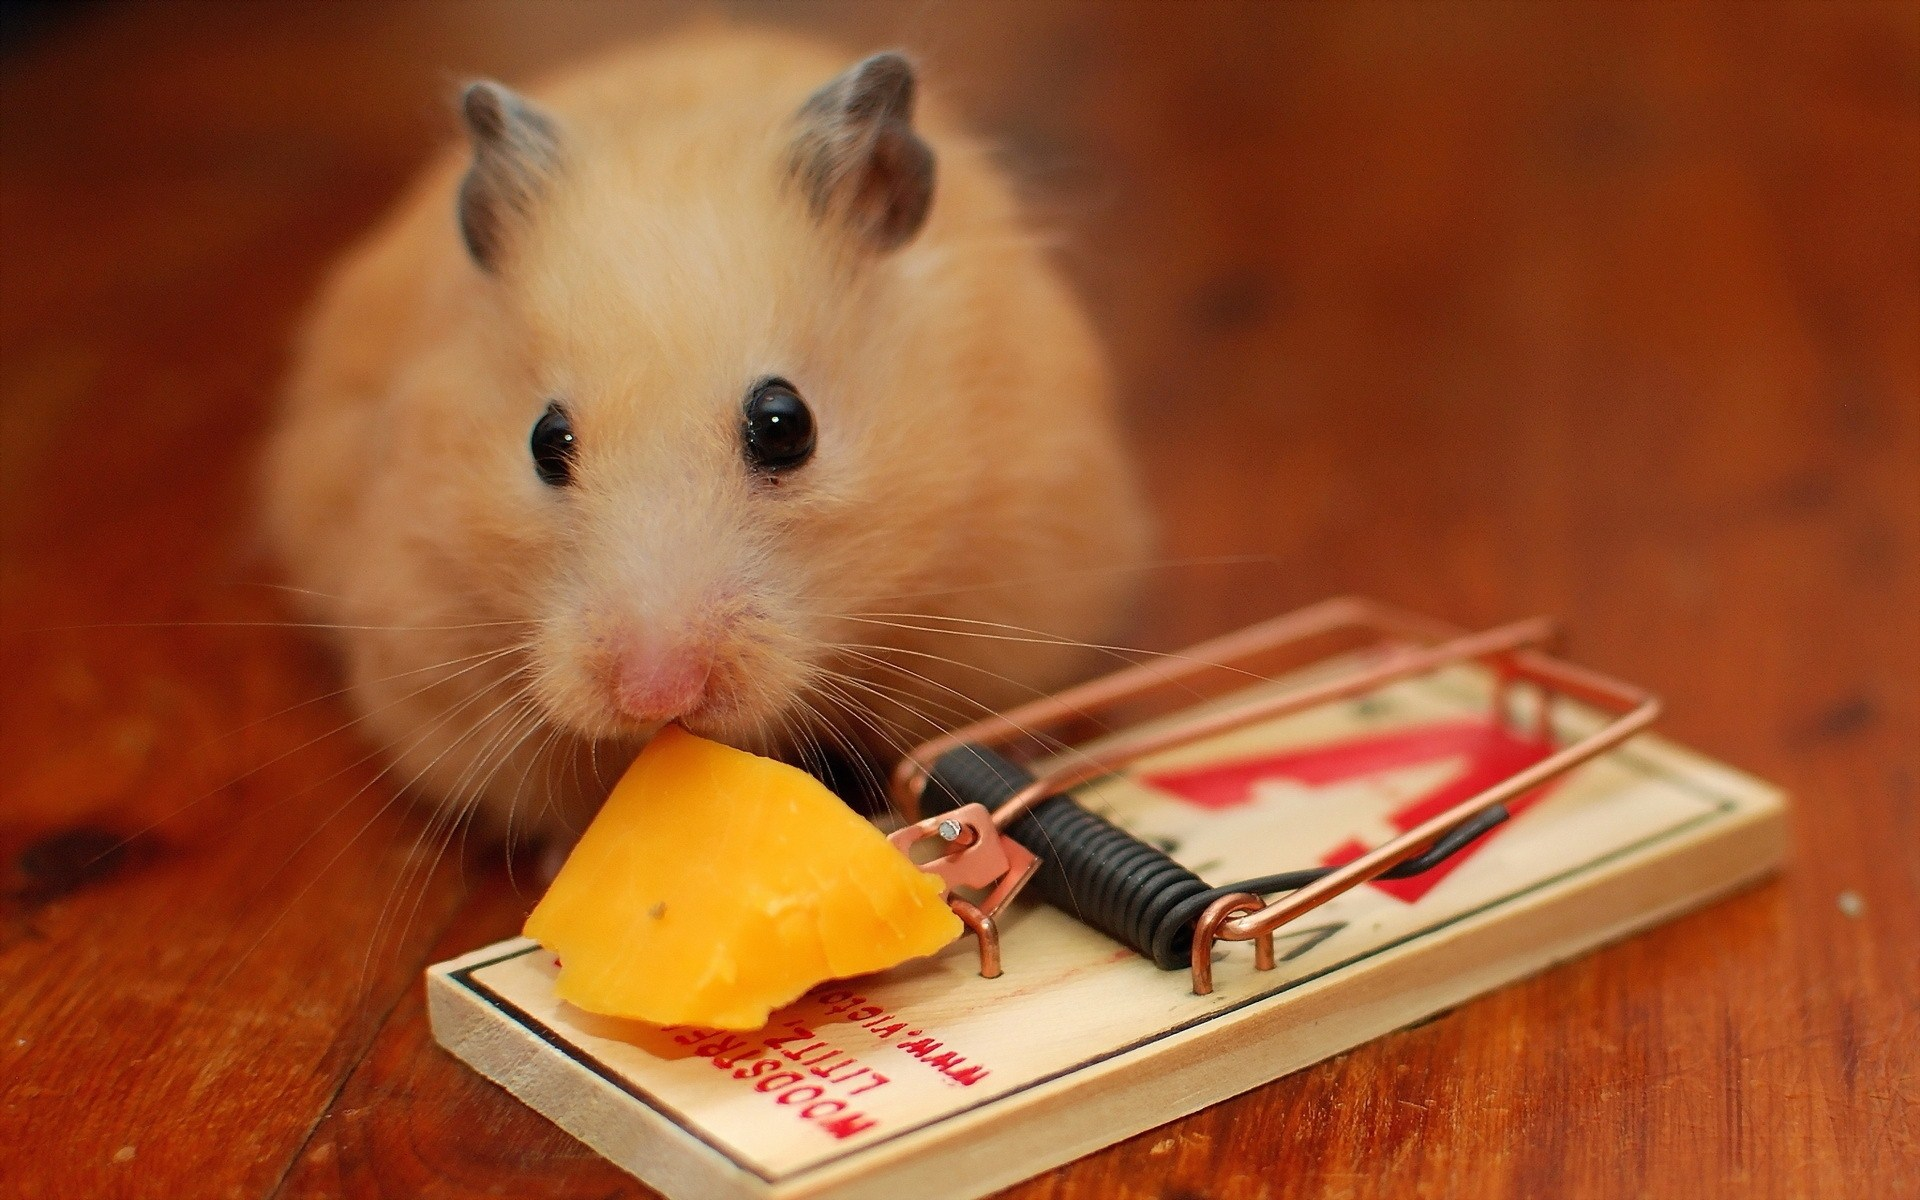 mouse-mousetrap-cheese-wide-hd-wallpaper